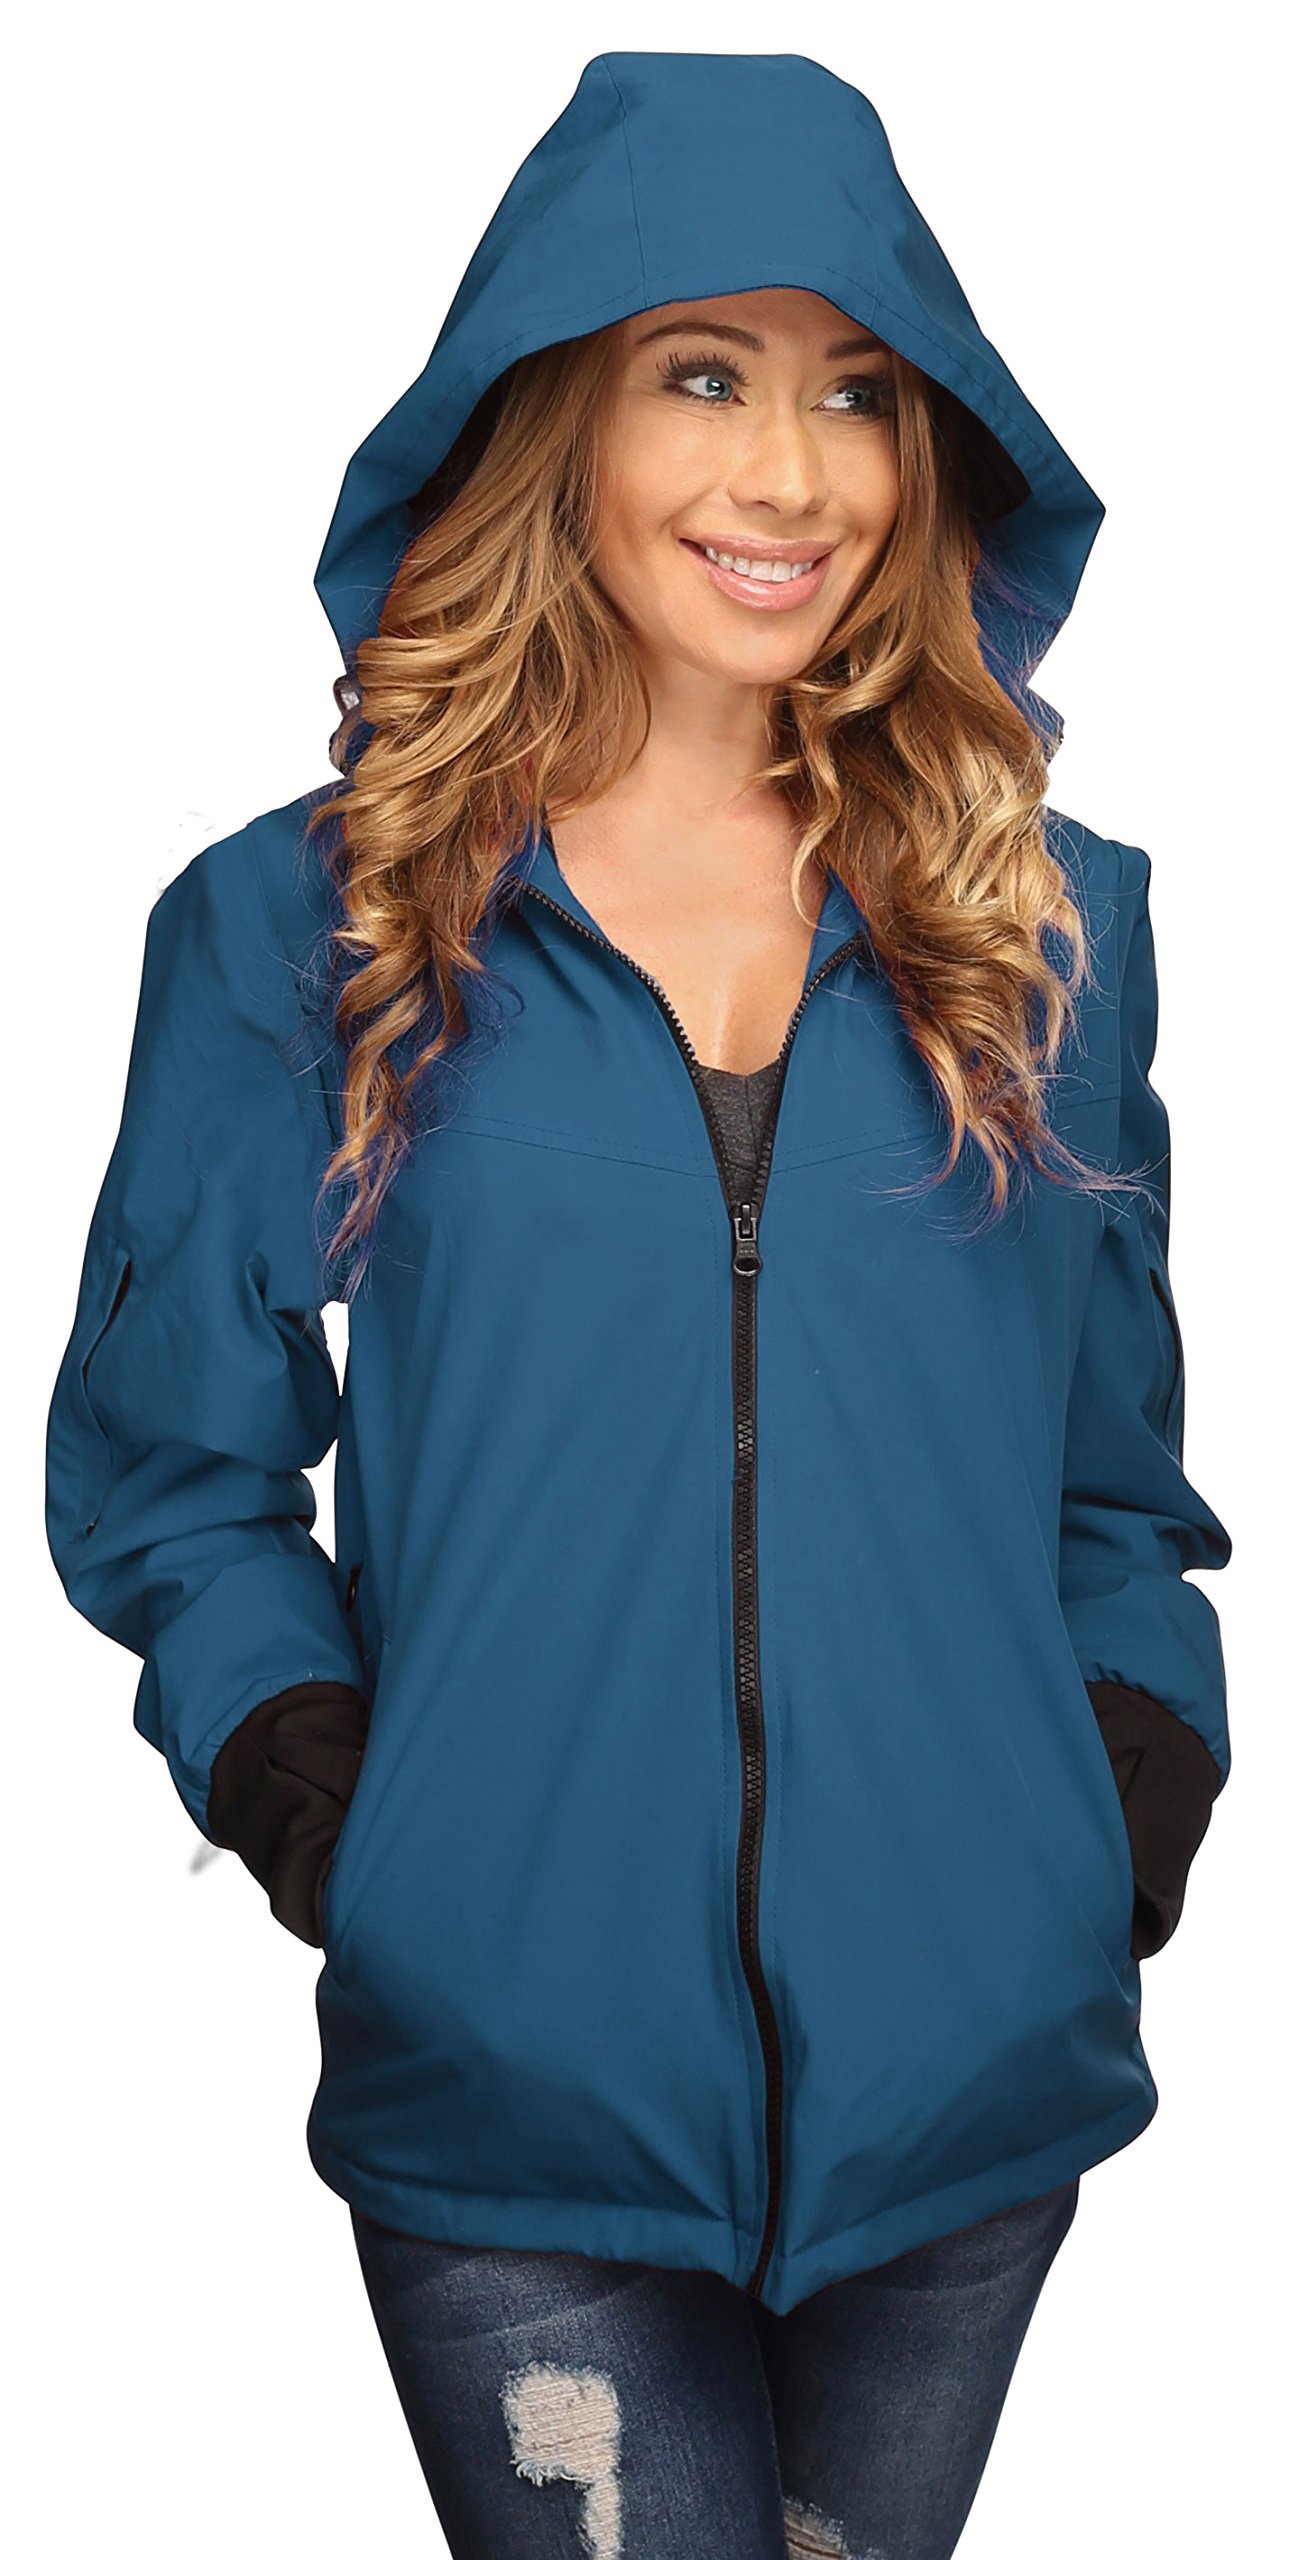 Joey Travel Jacket with Hidden Pockets. (Medium, Blue) by Global Travel Clothing (Image #1)